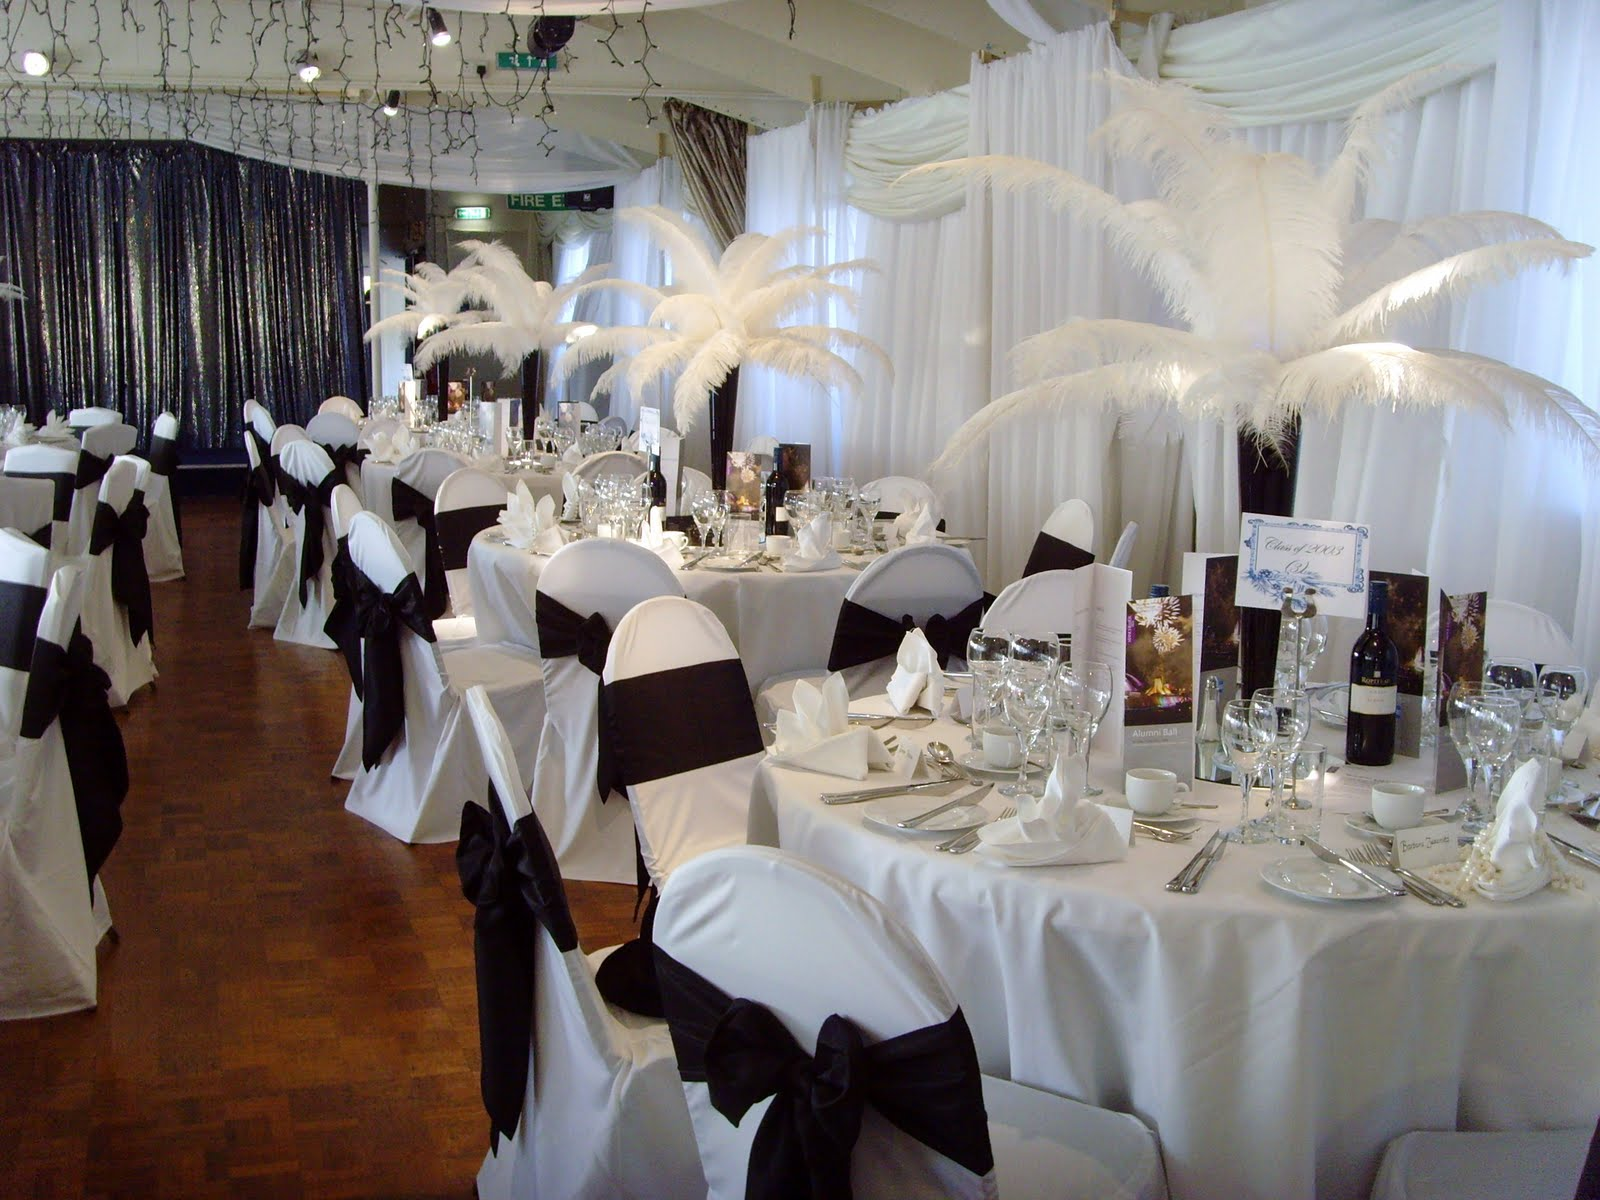 The best wedding decorations wedding venues decorations guide for The best wedding decorations